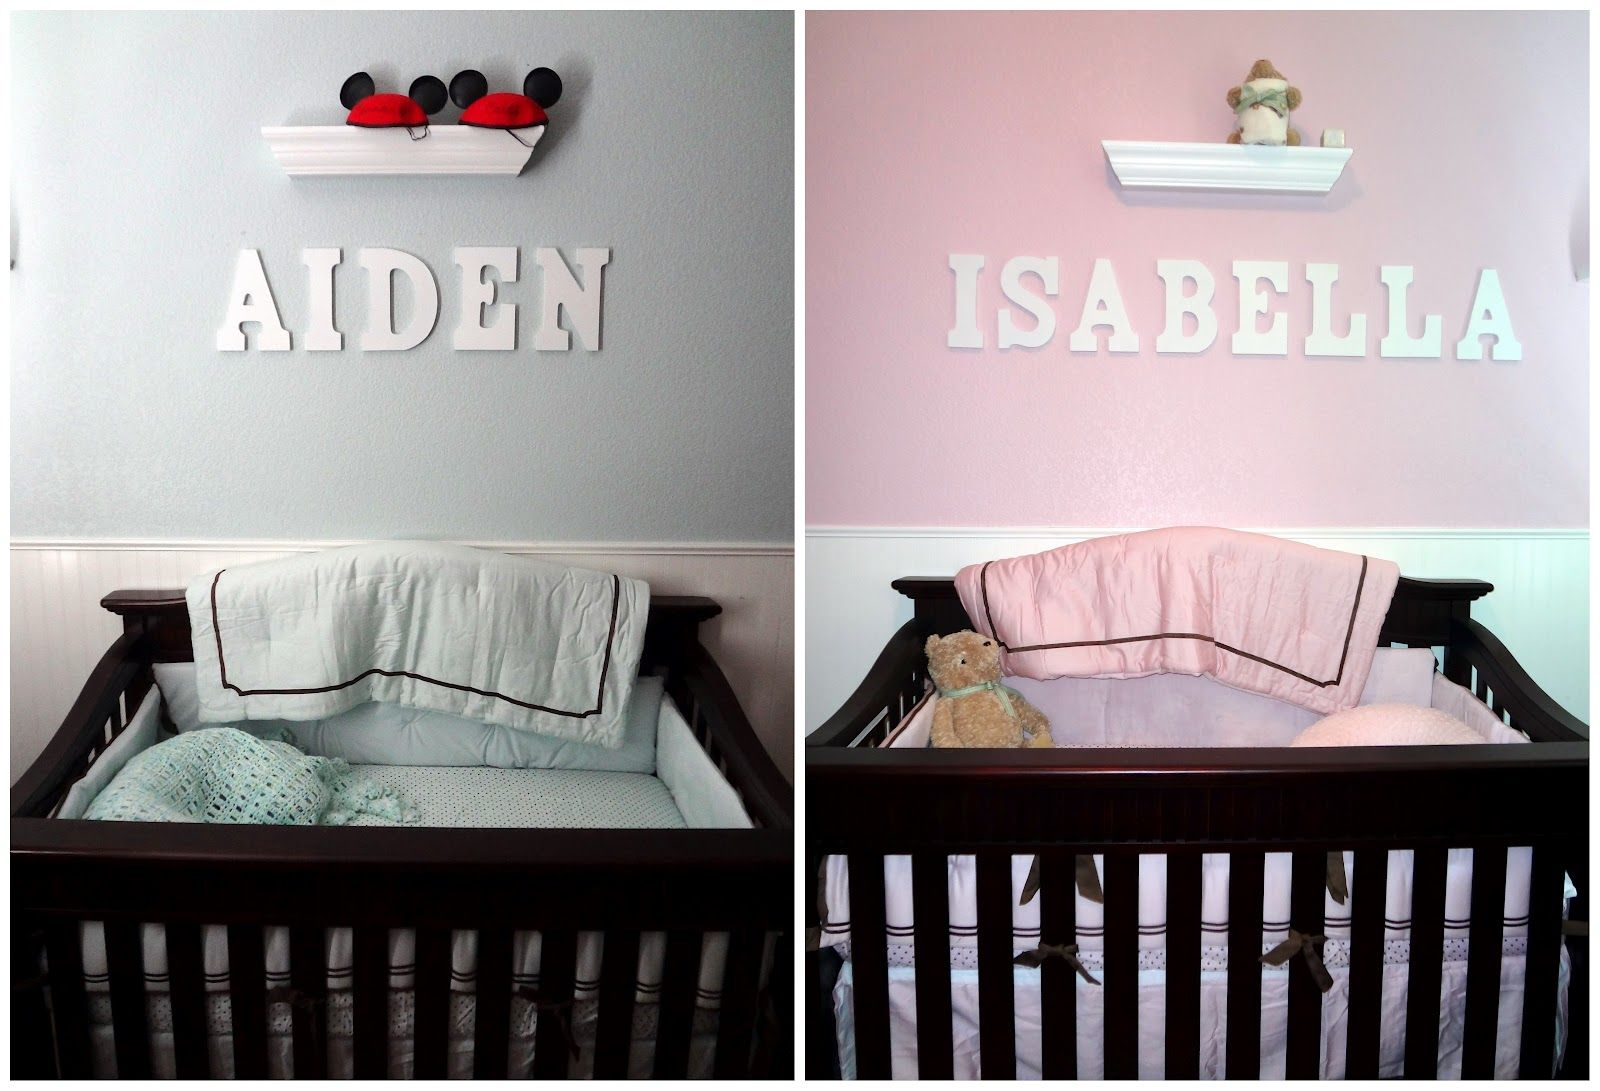 Baby nursery cute decorations twin baby nursery ideas saveemail - Twin Nursery Decorating Ideas 1000 Images About Ideas For The House On Pinterest Wall Mount 1000